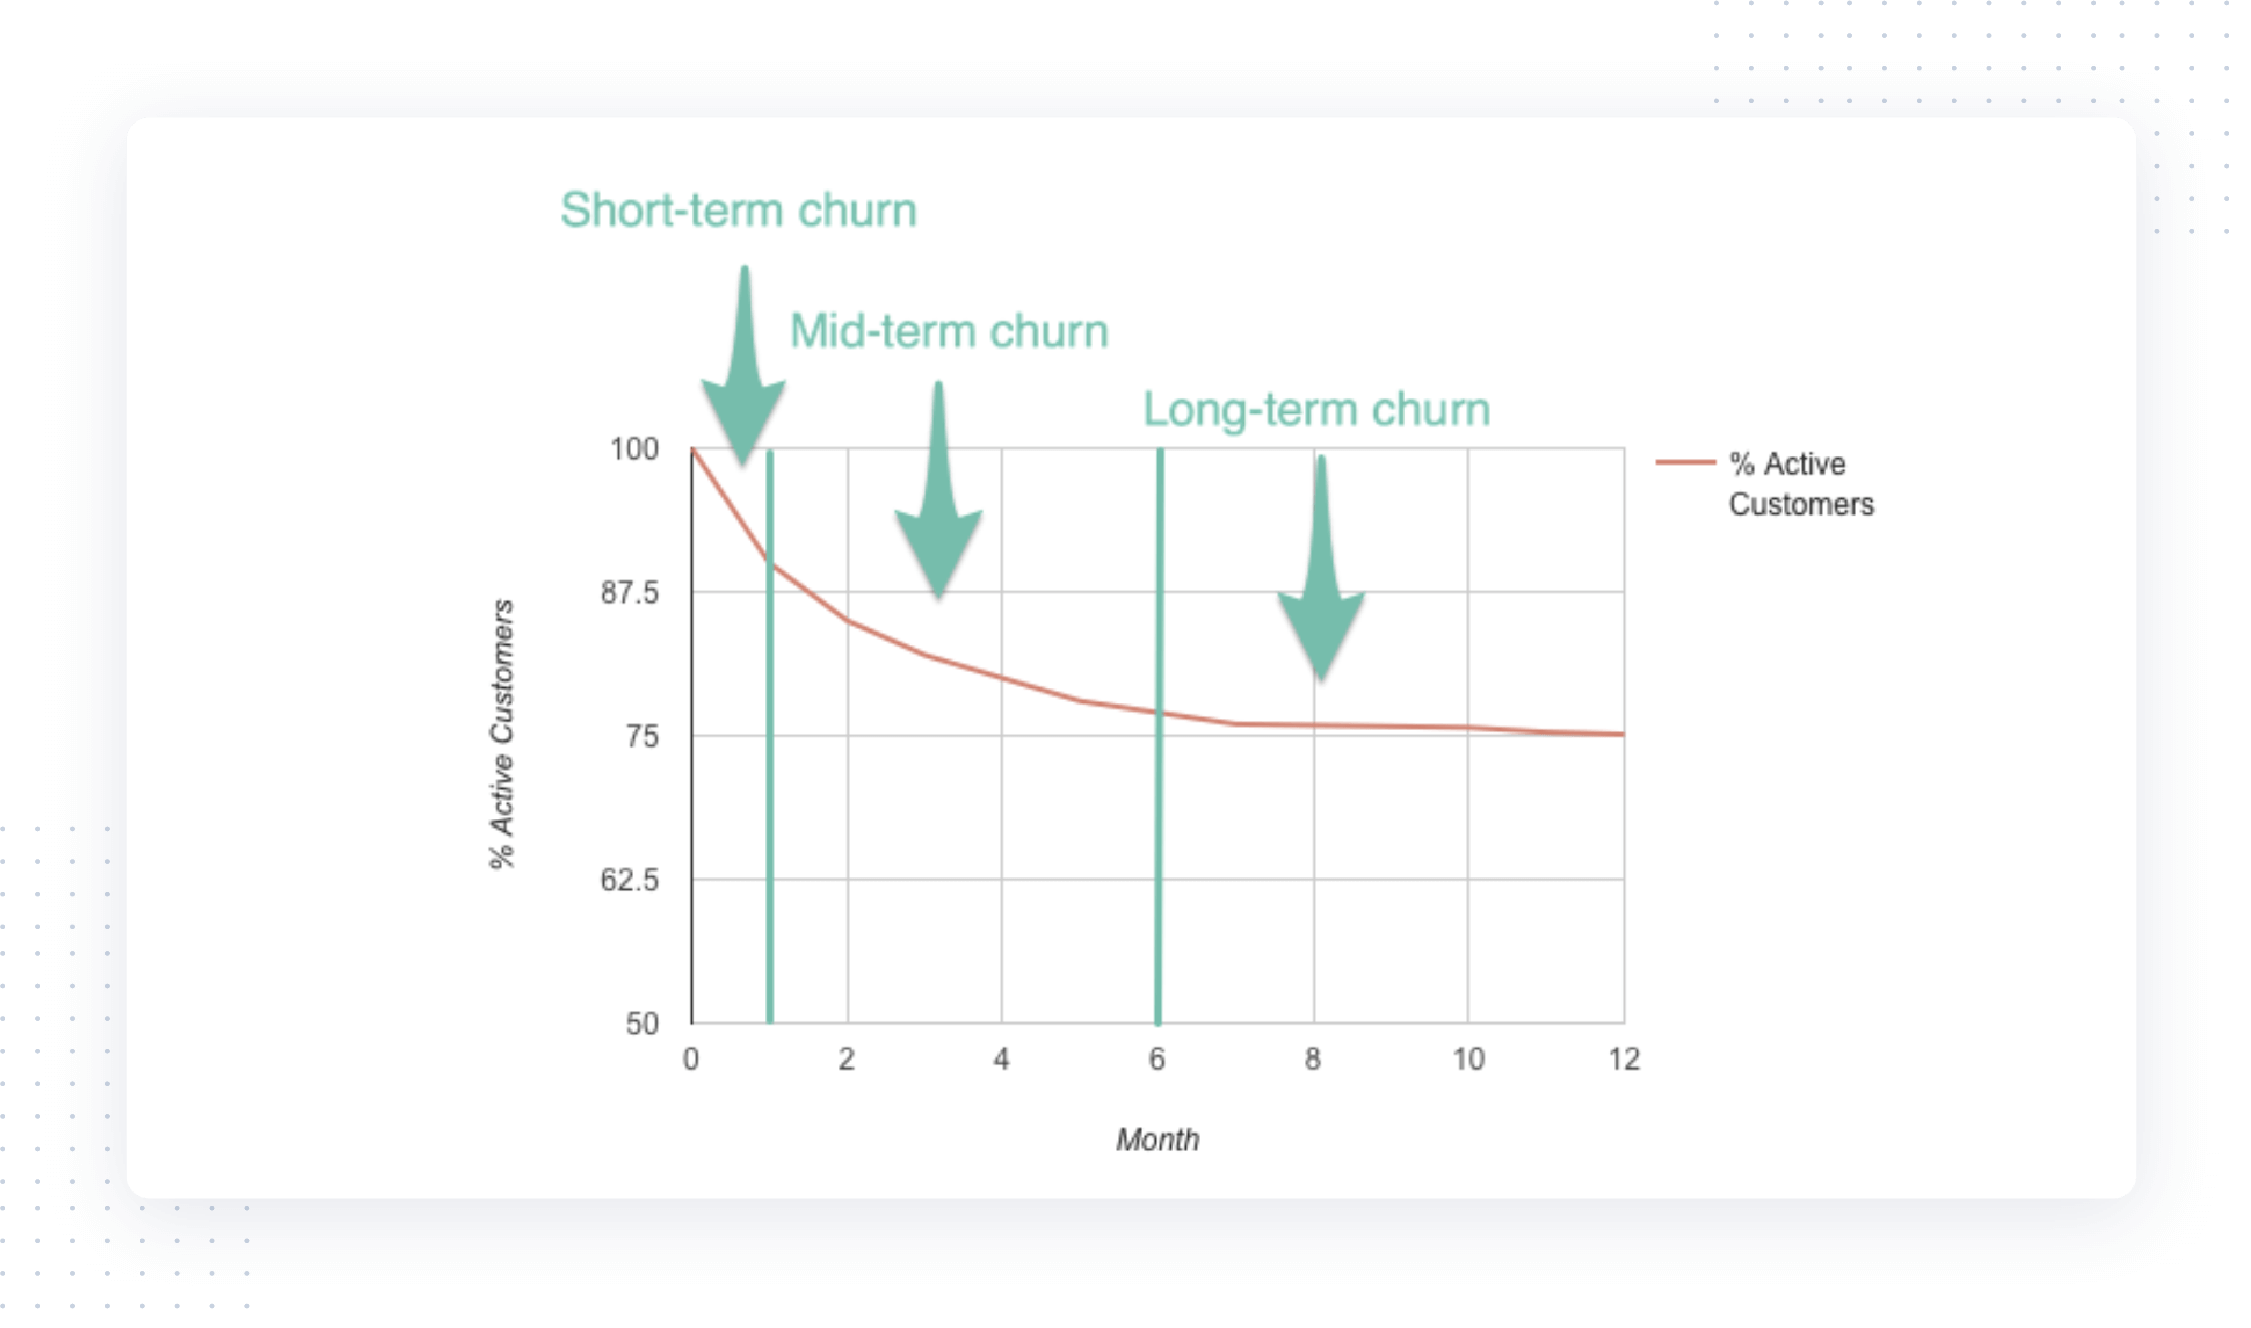 Stages of customer or user retention—short-term, mid-term, and long-term churn.